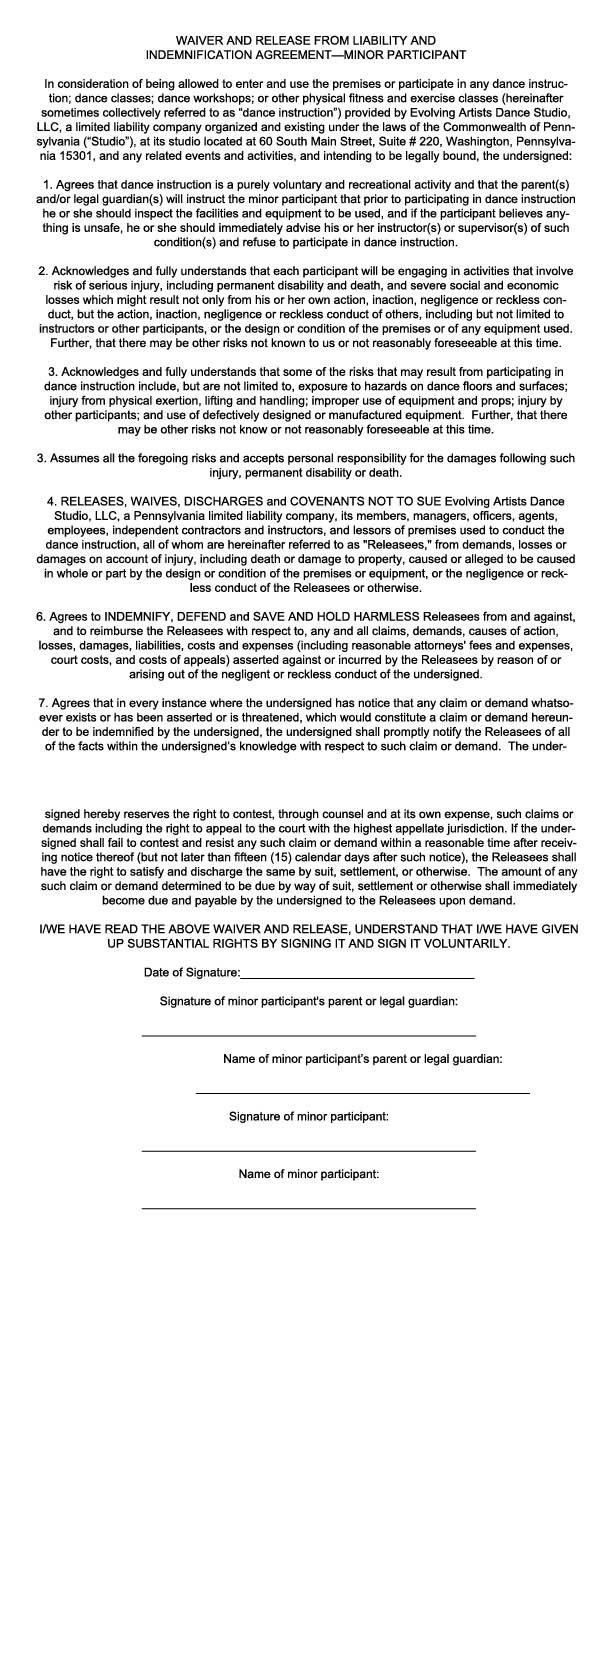 Waiver for minors